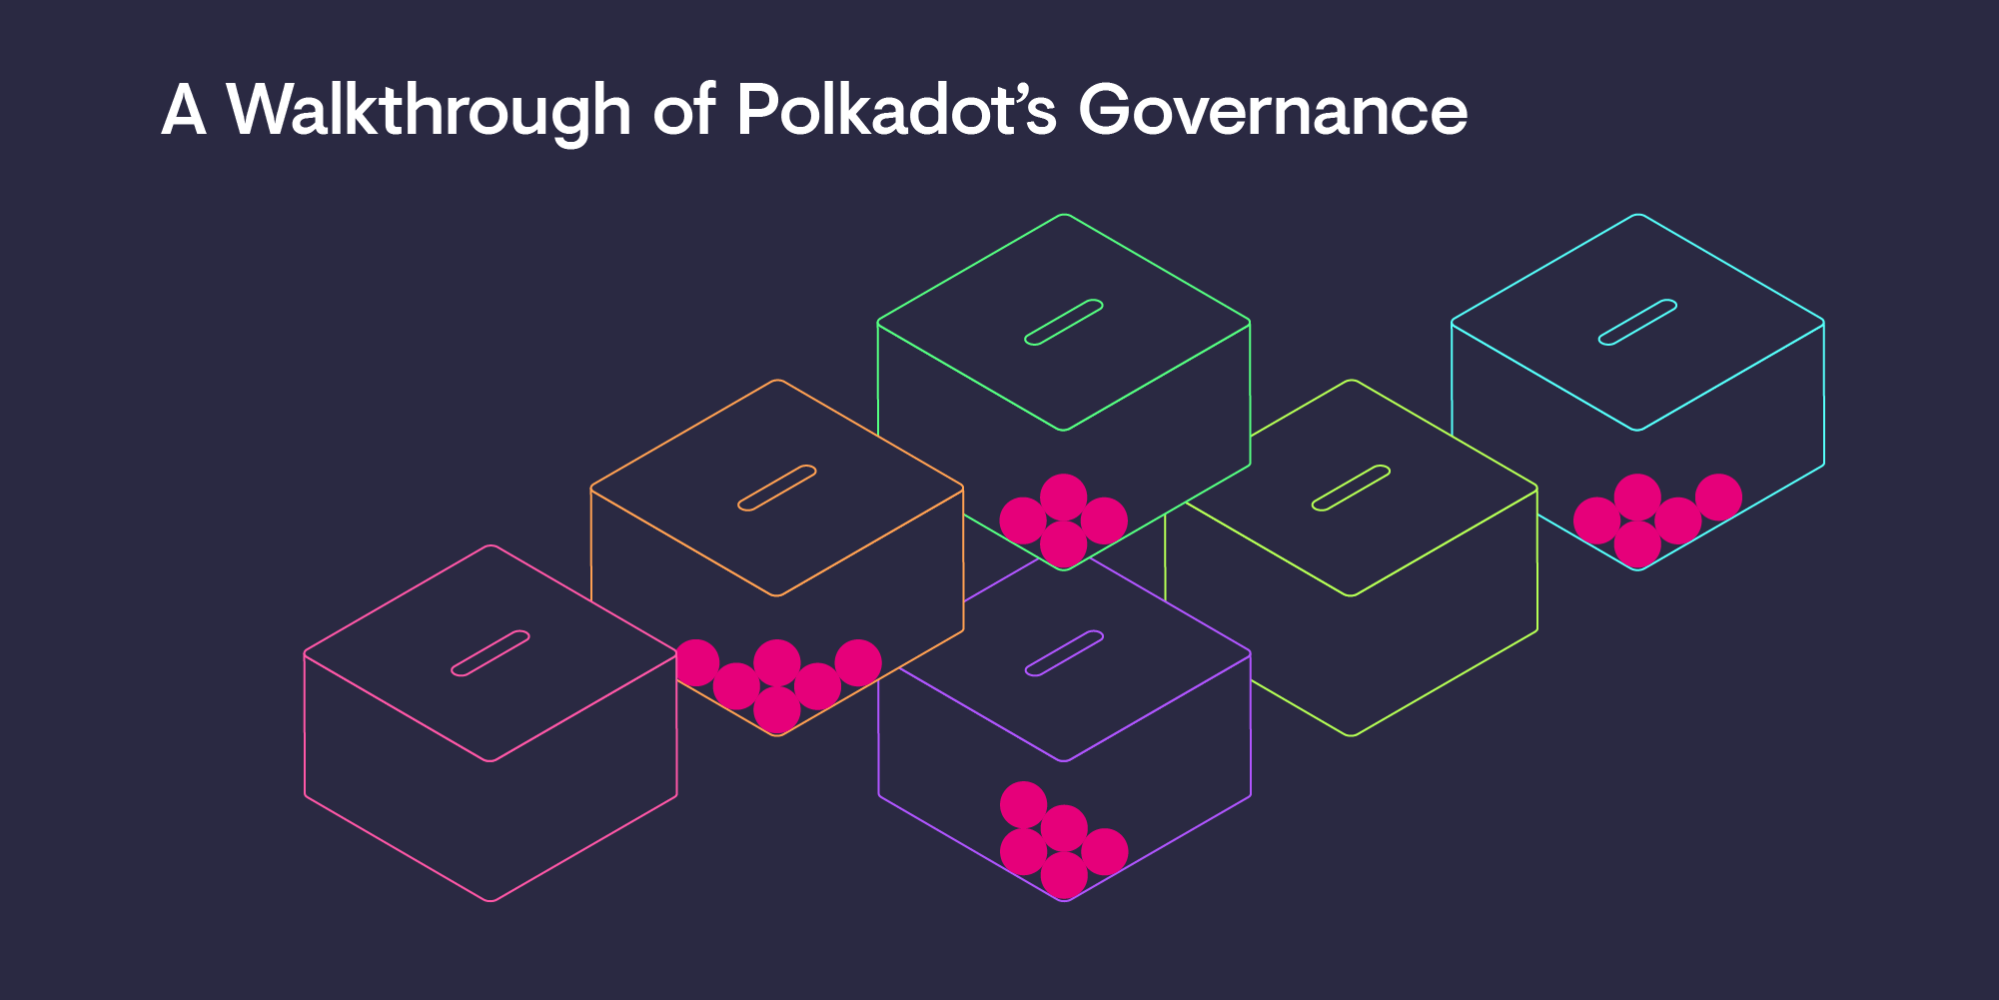 A Walkthrough of Polkadot's Governance